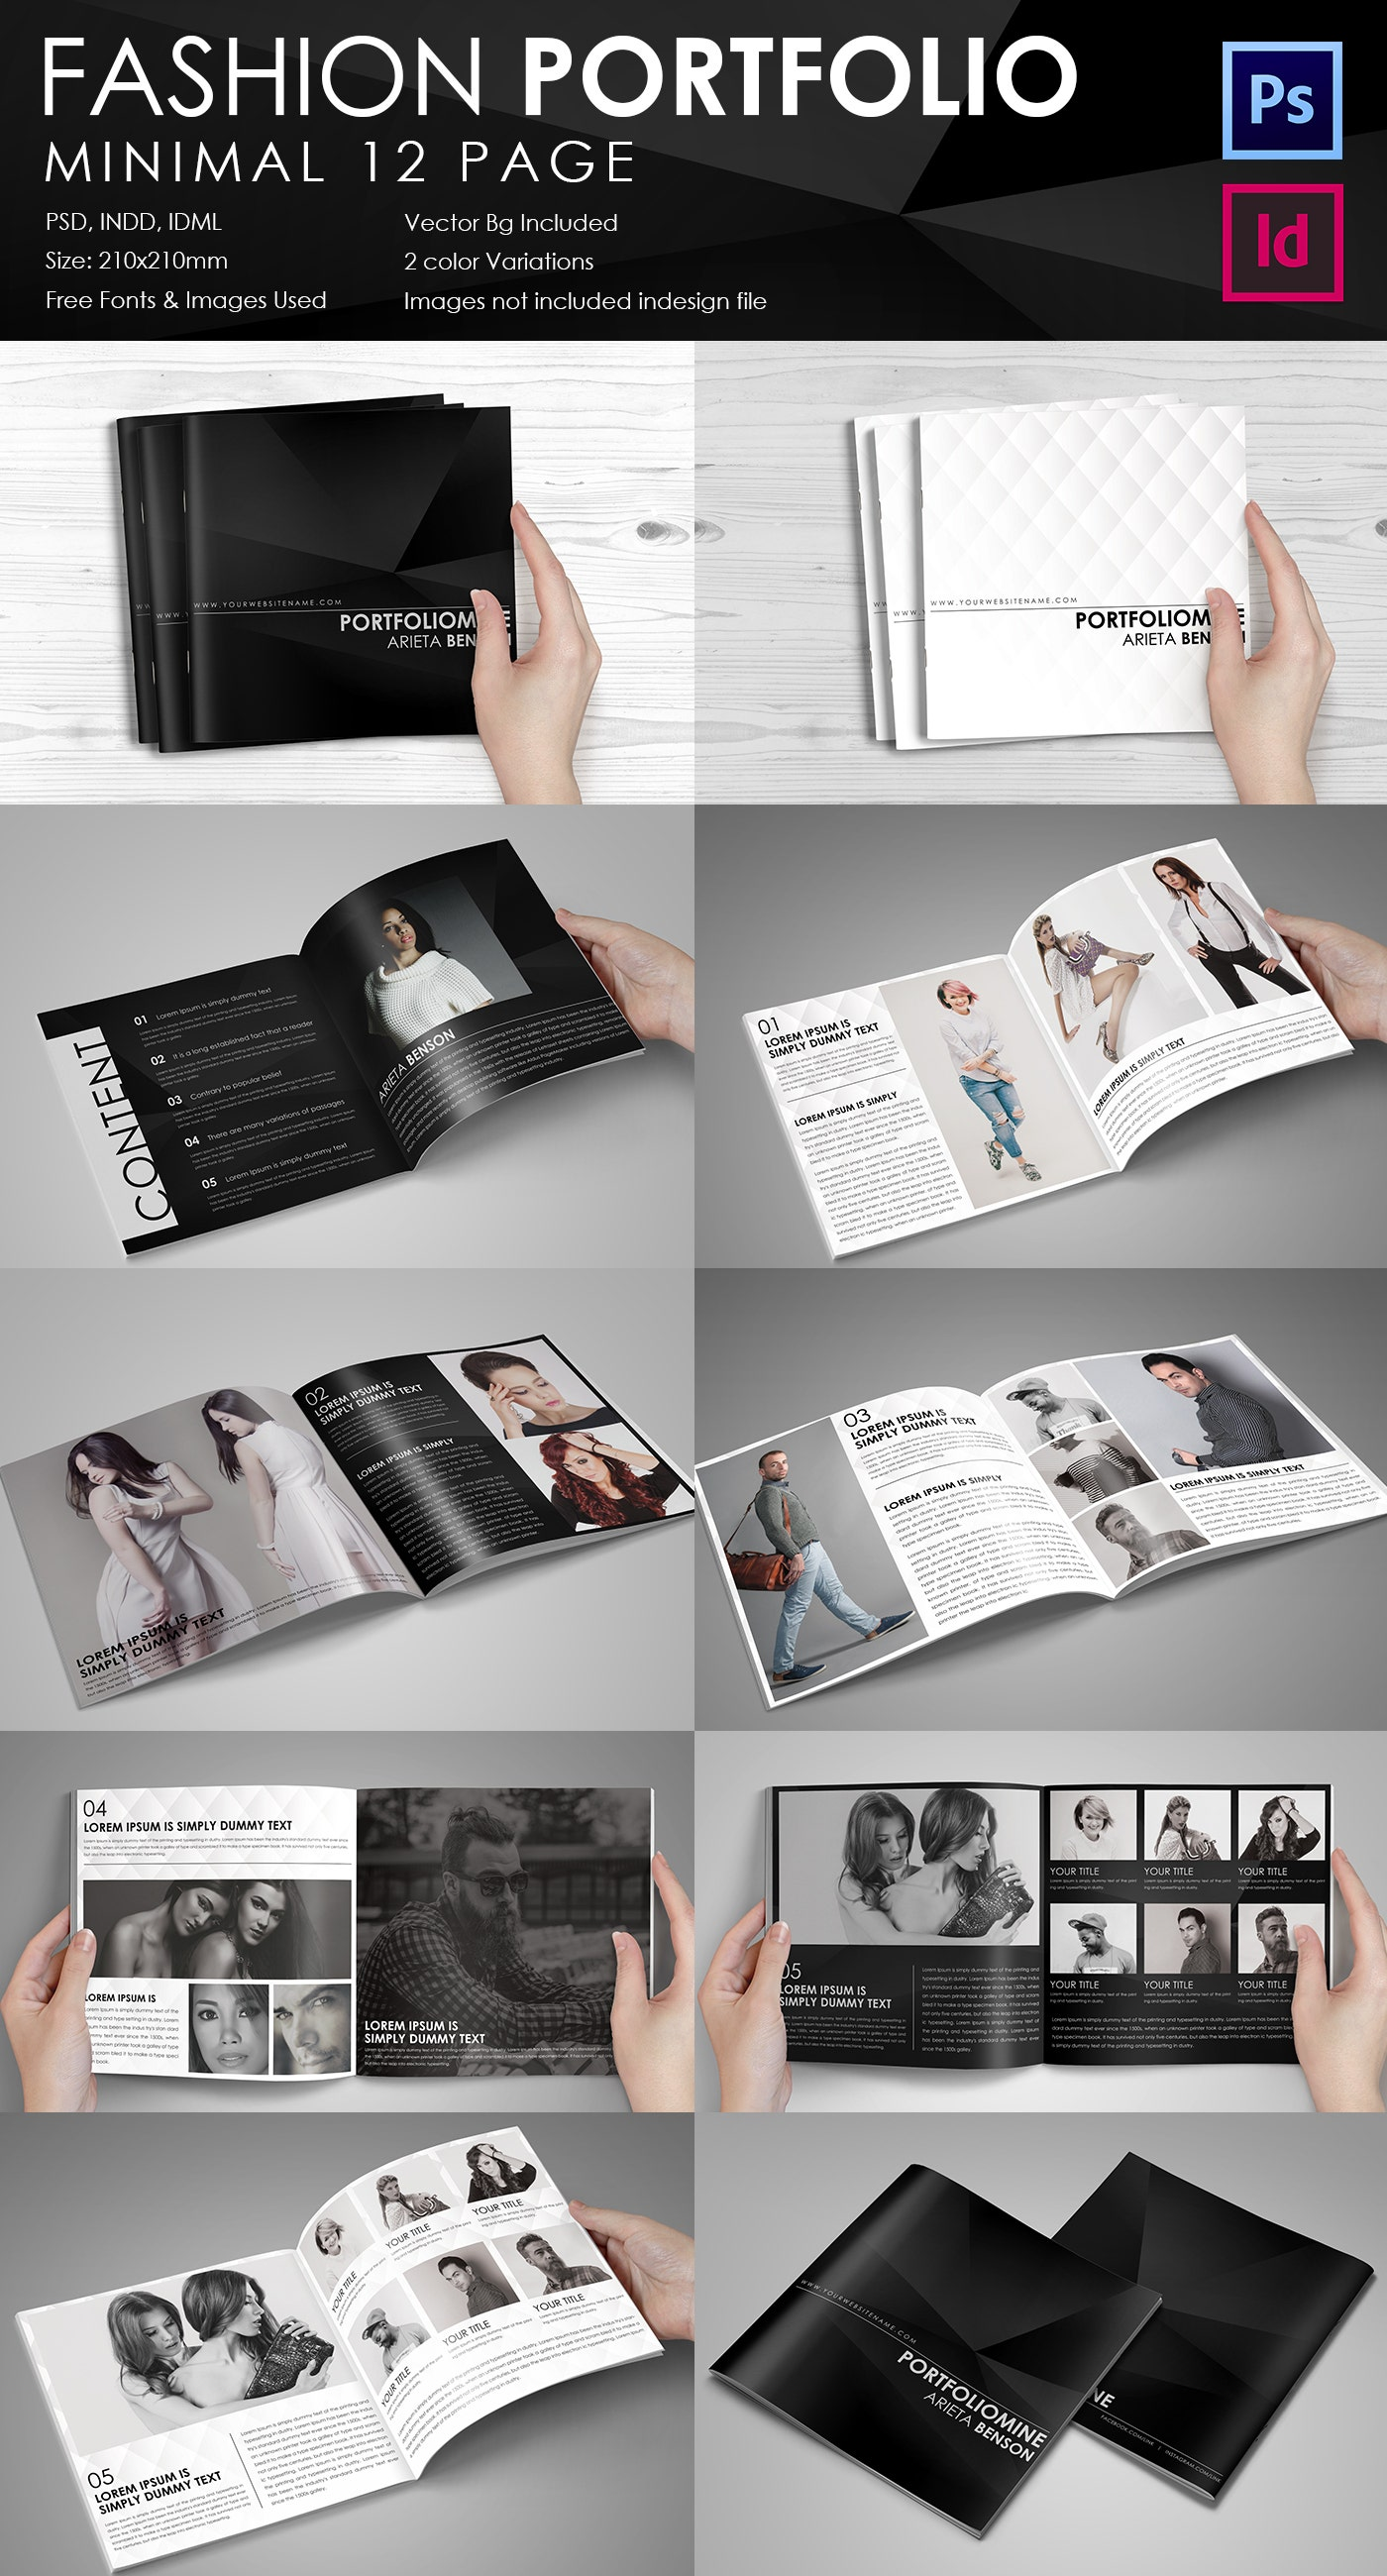 Fashion brochure templates 57 free psd eps ai for Fashion designing templates free download